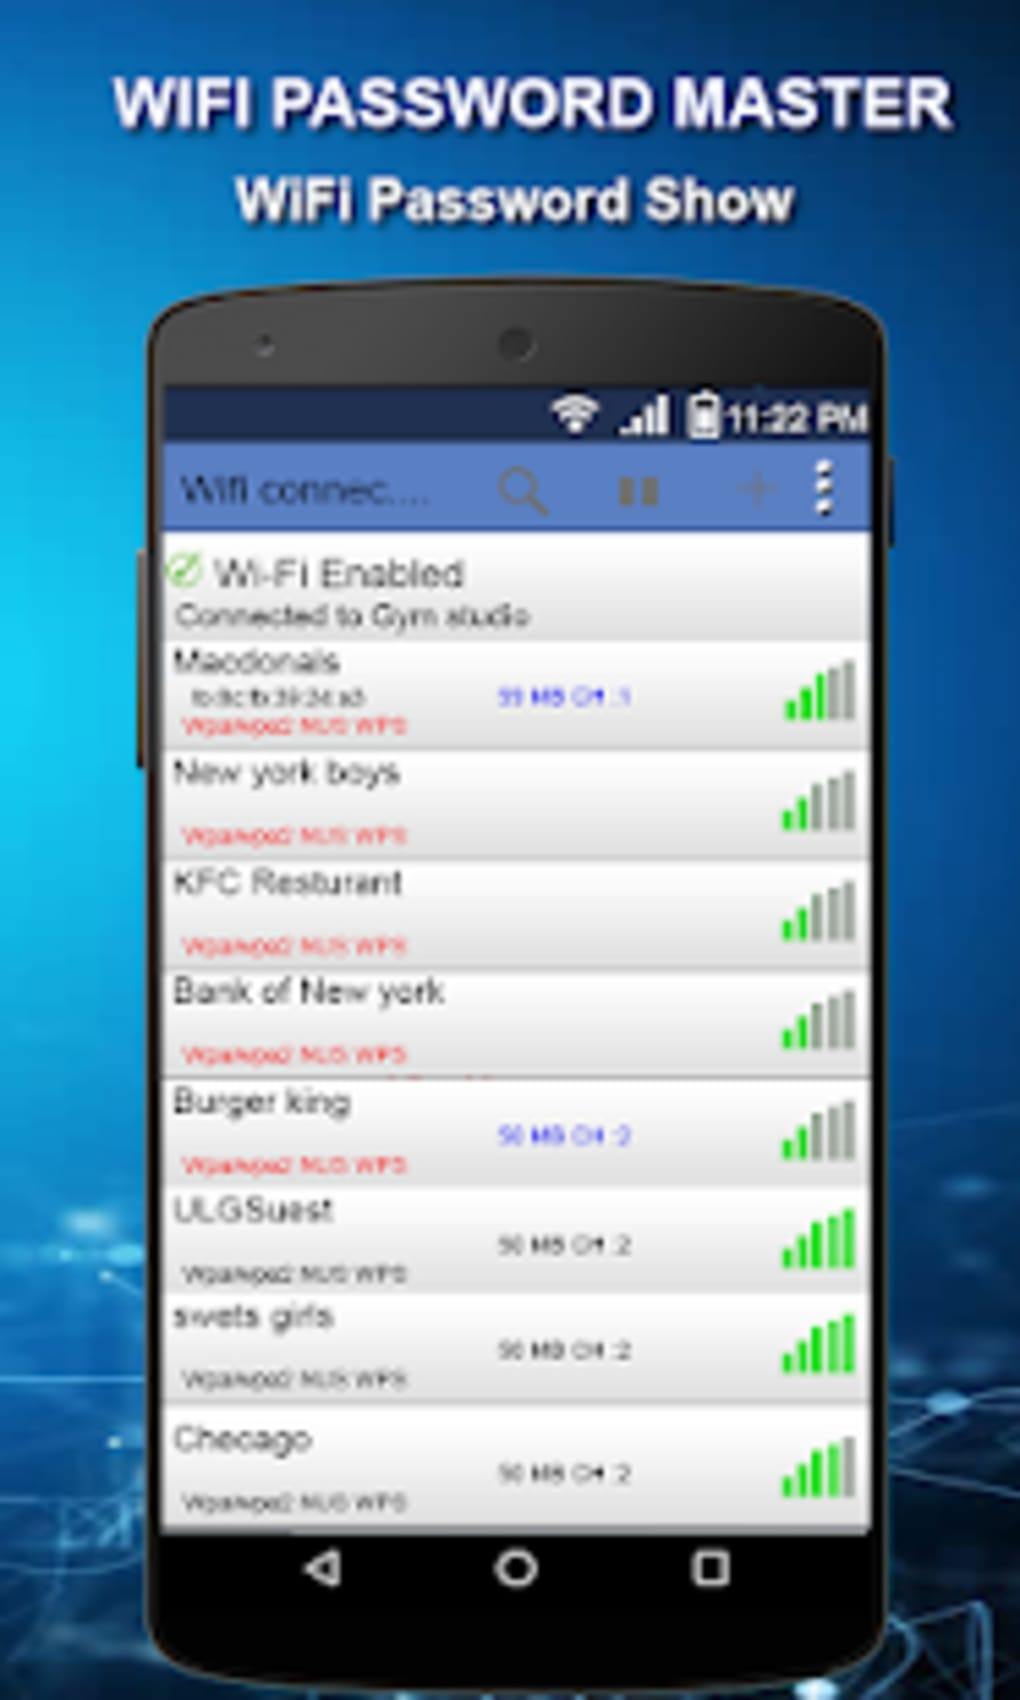 WiFi Password Show - Wifi Password Master for Android - Download